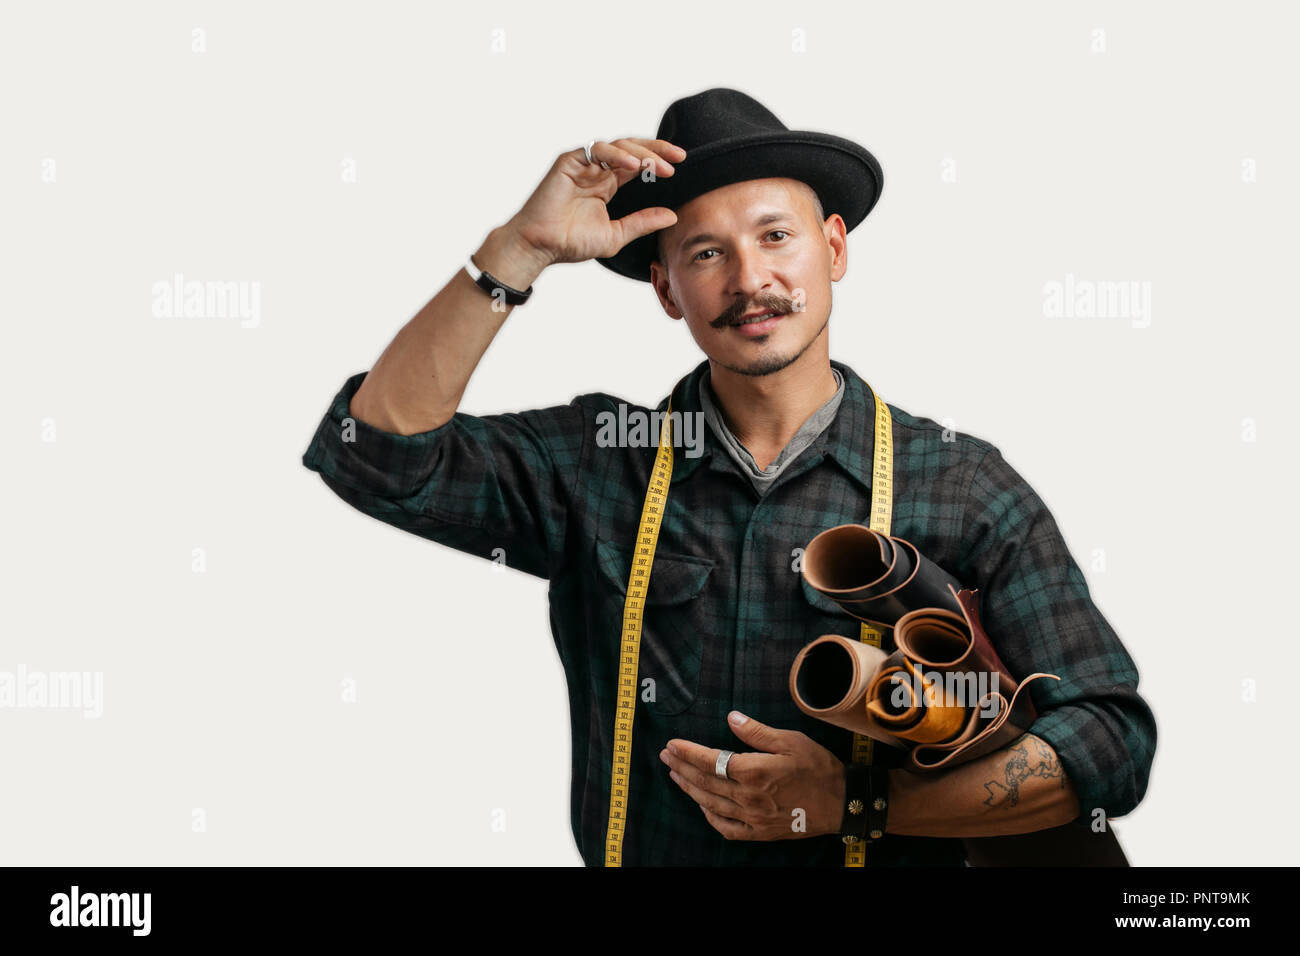 Artisan of leather in creative black hat posing with leather goods in studio. - Stock Image